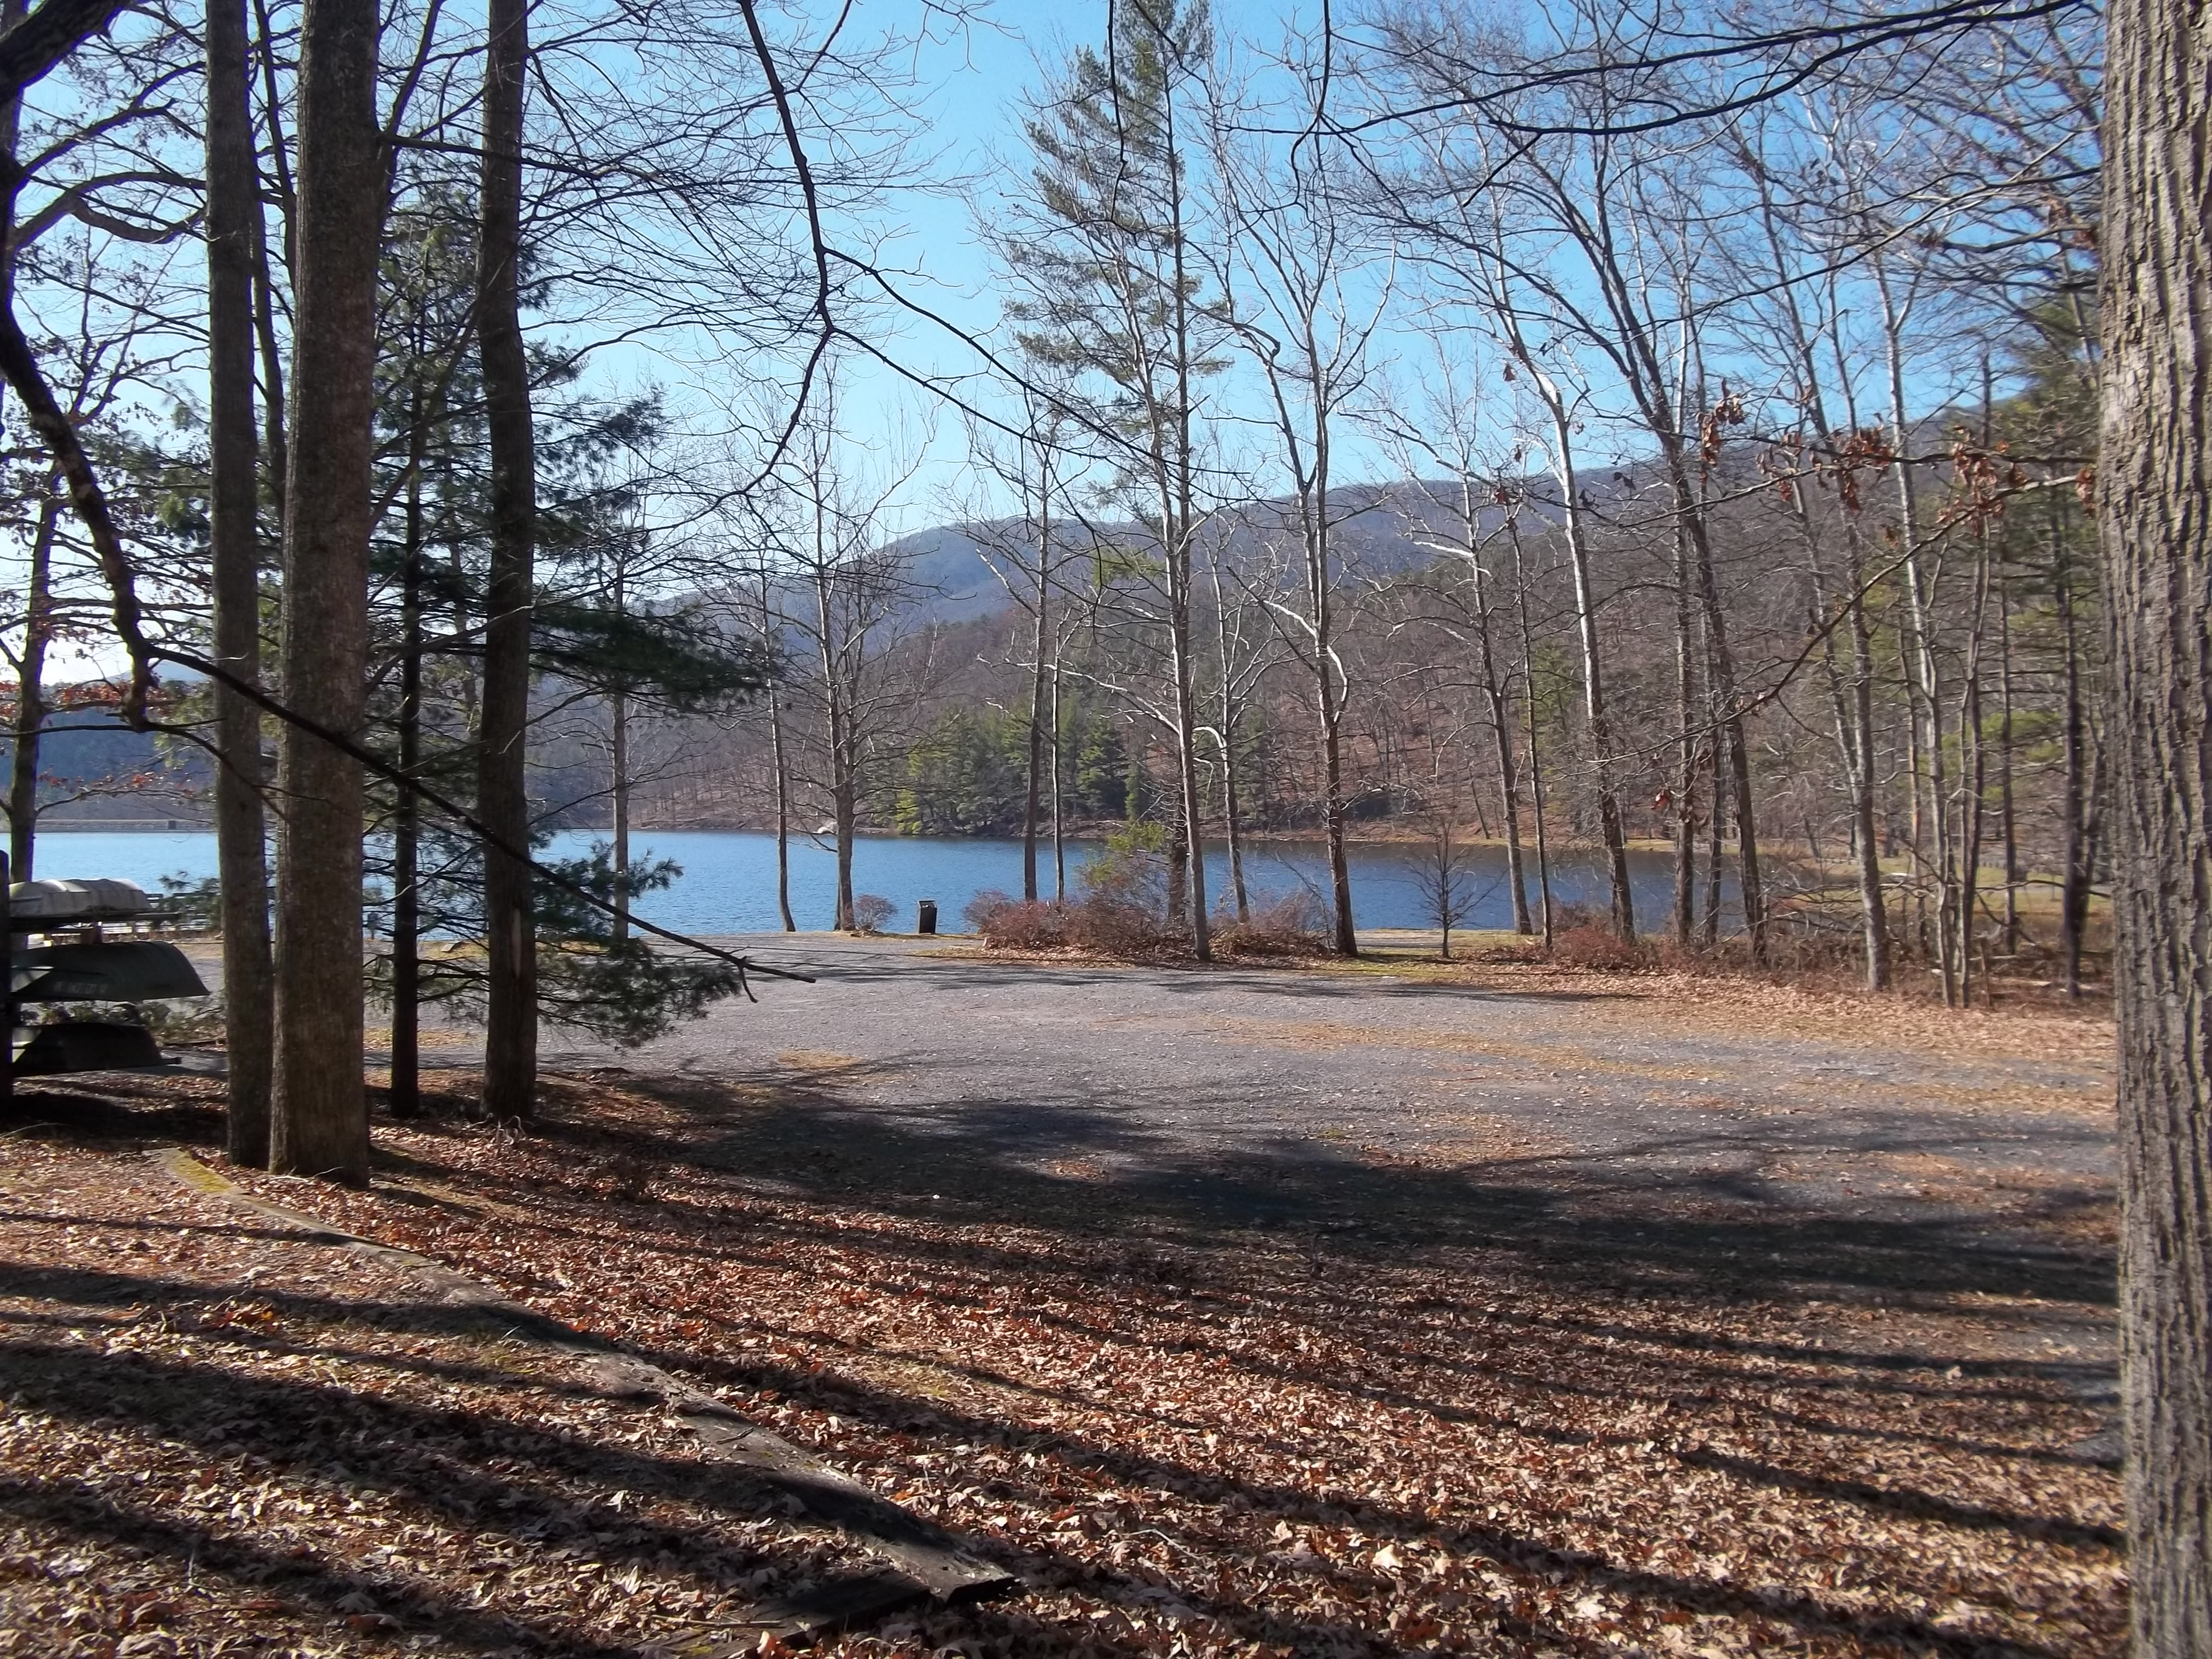 Douthat State Park